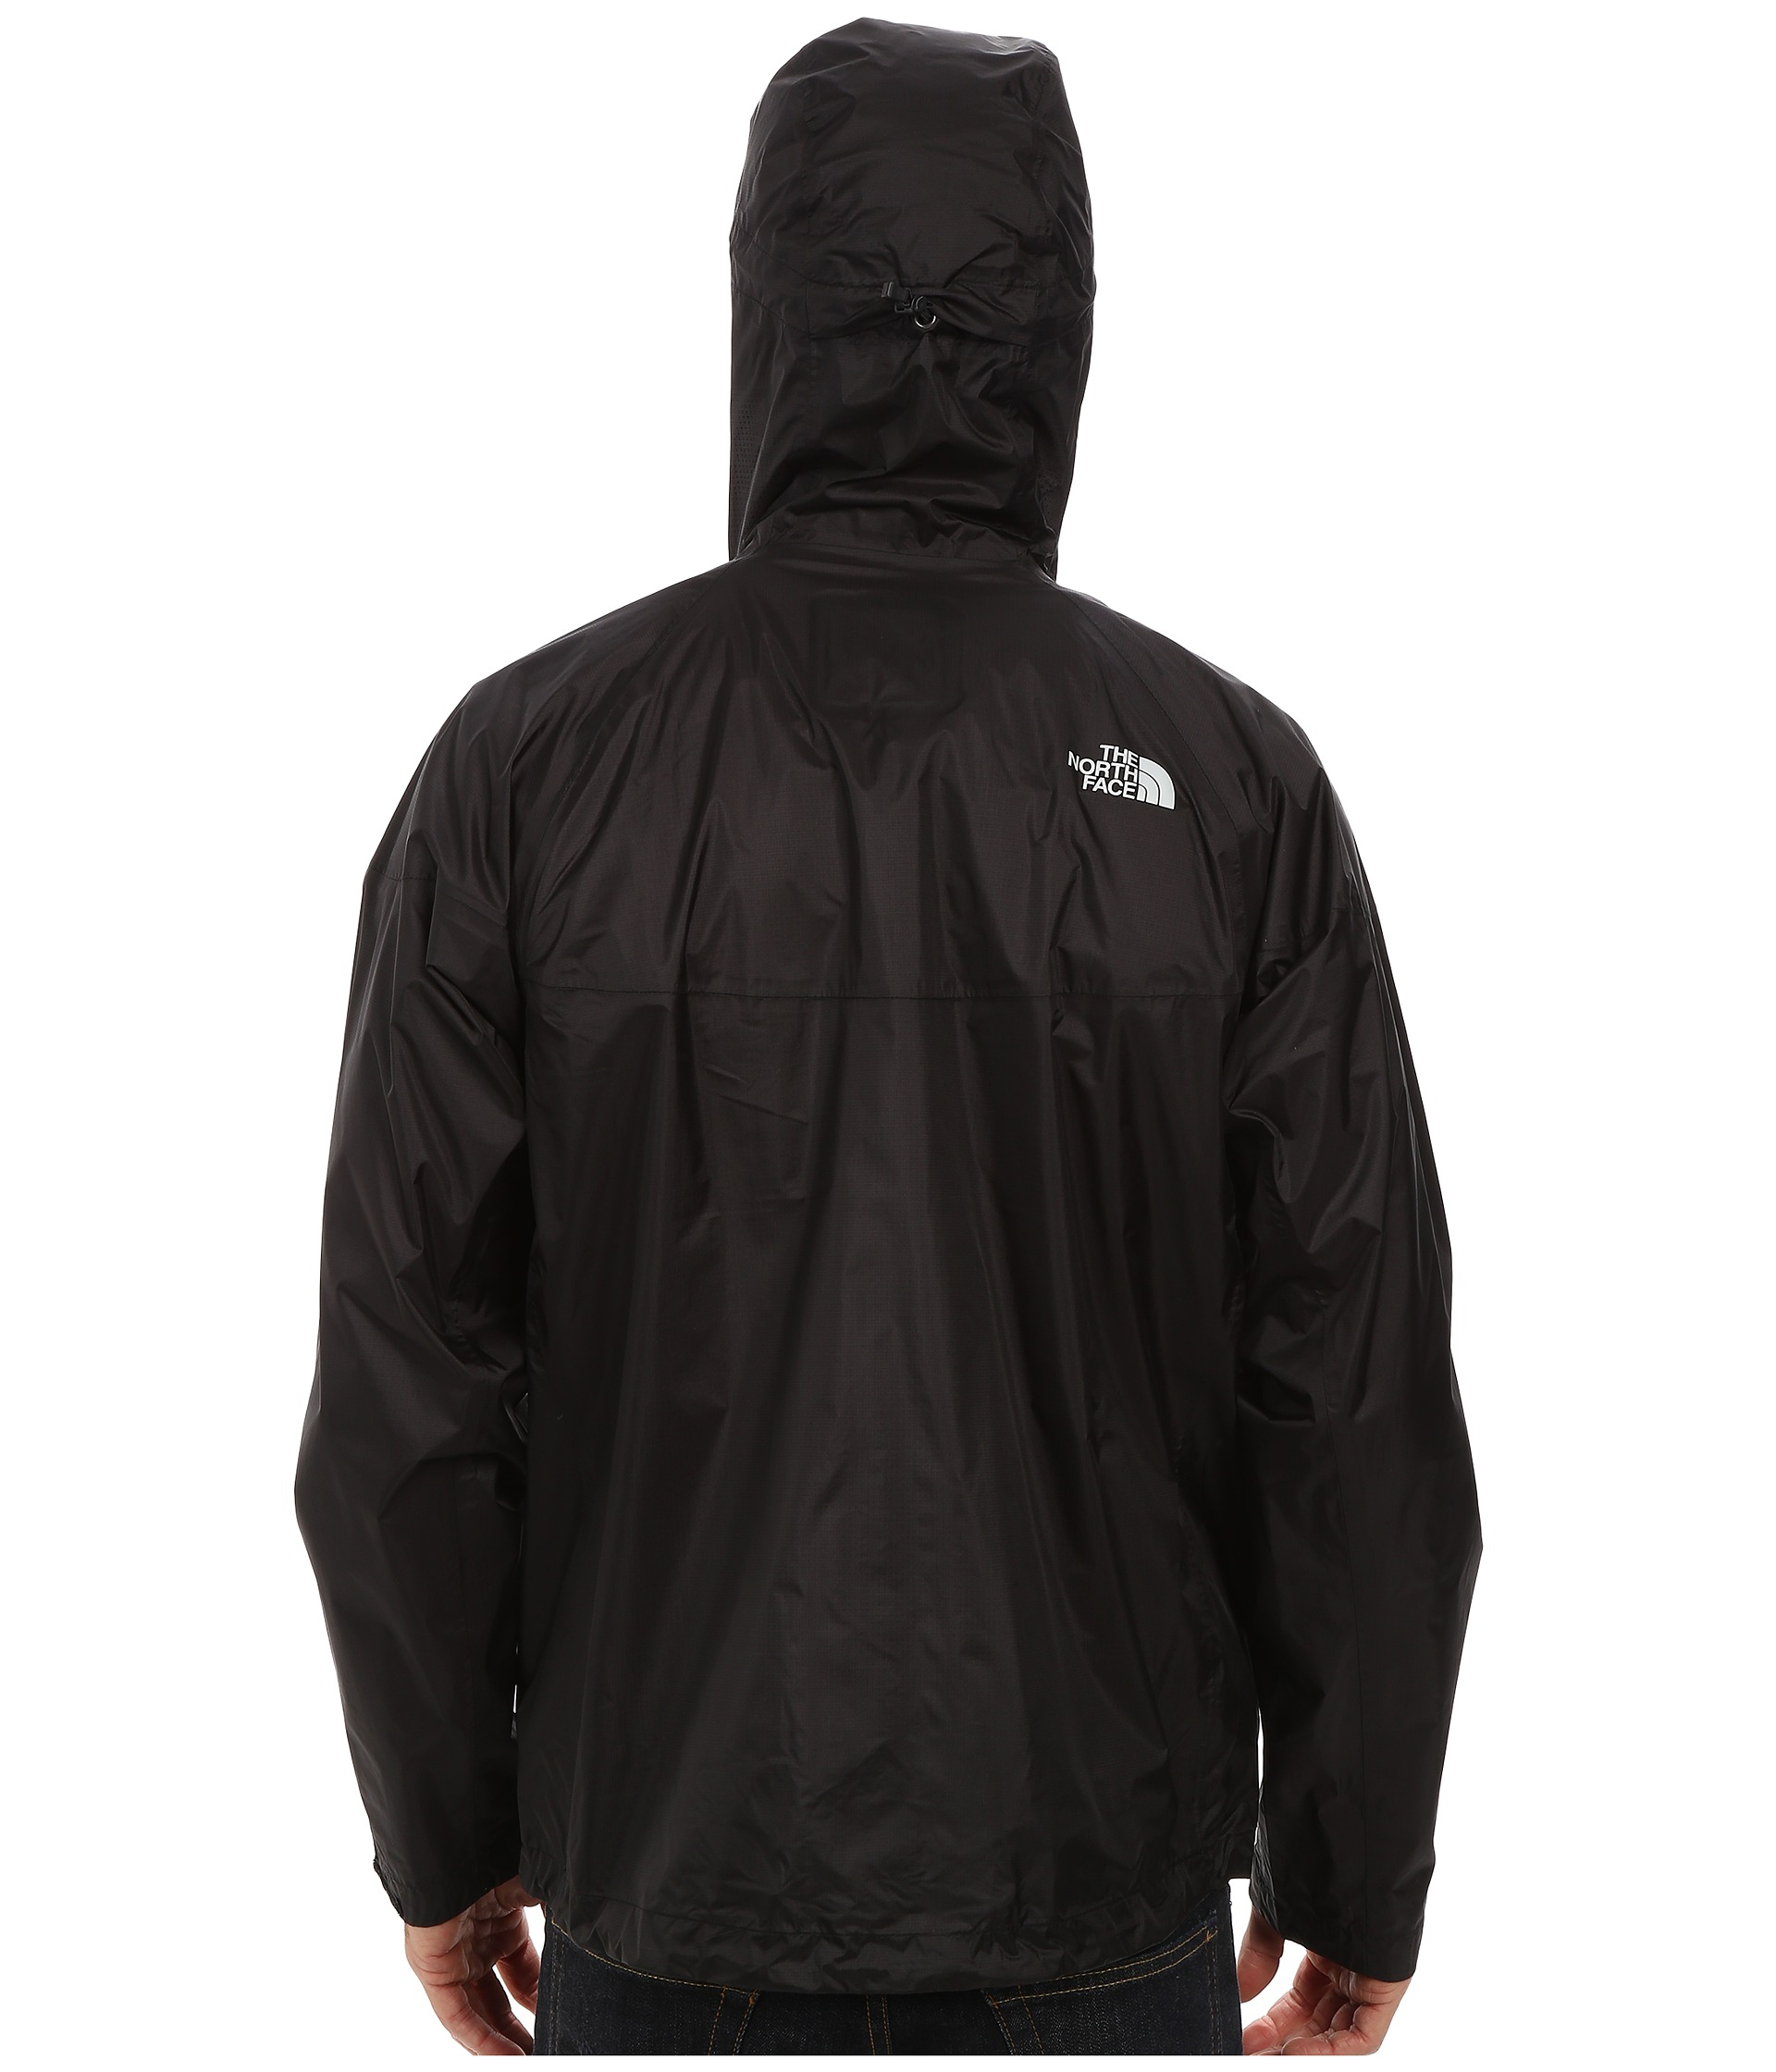 d2260c343f coupon code for lyst the north face cloud venture jacket in black 2f587  c93aa